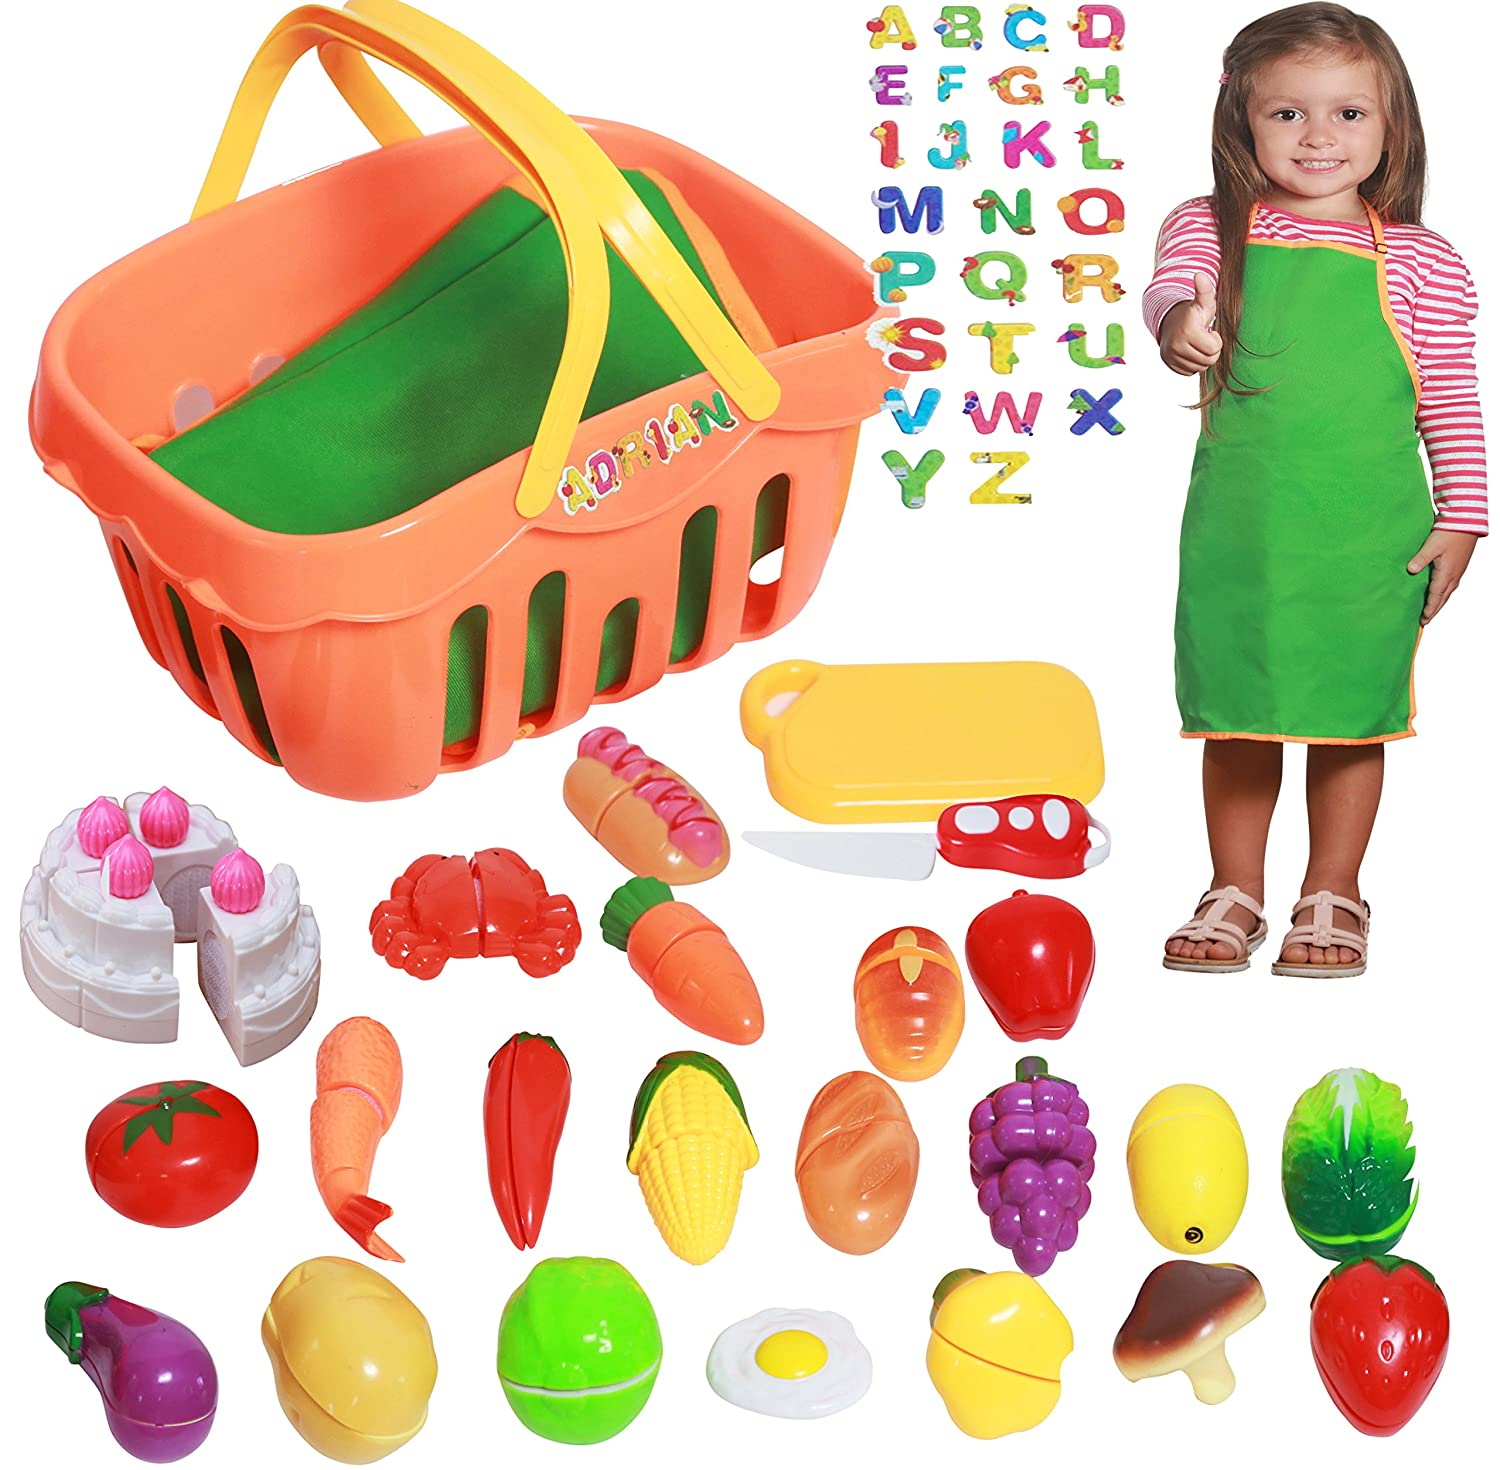 Play Food Set for Kids & Toy Food for Pretend Play - 26 Piece Play Kitchen Set with Childrens Educational Food Toys for Toddlers Inspires Imagination - Fake Plastic Foods for Cooking